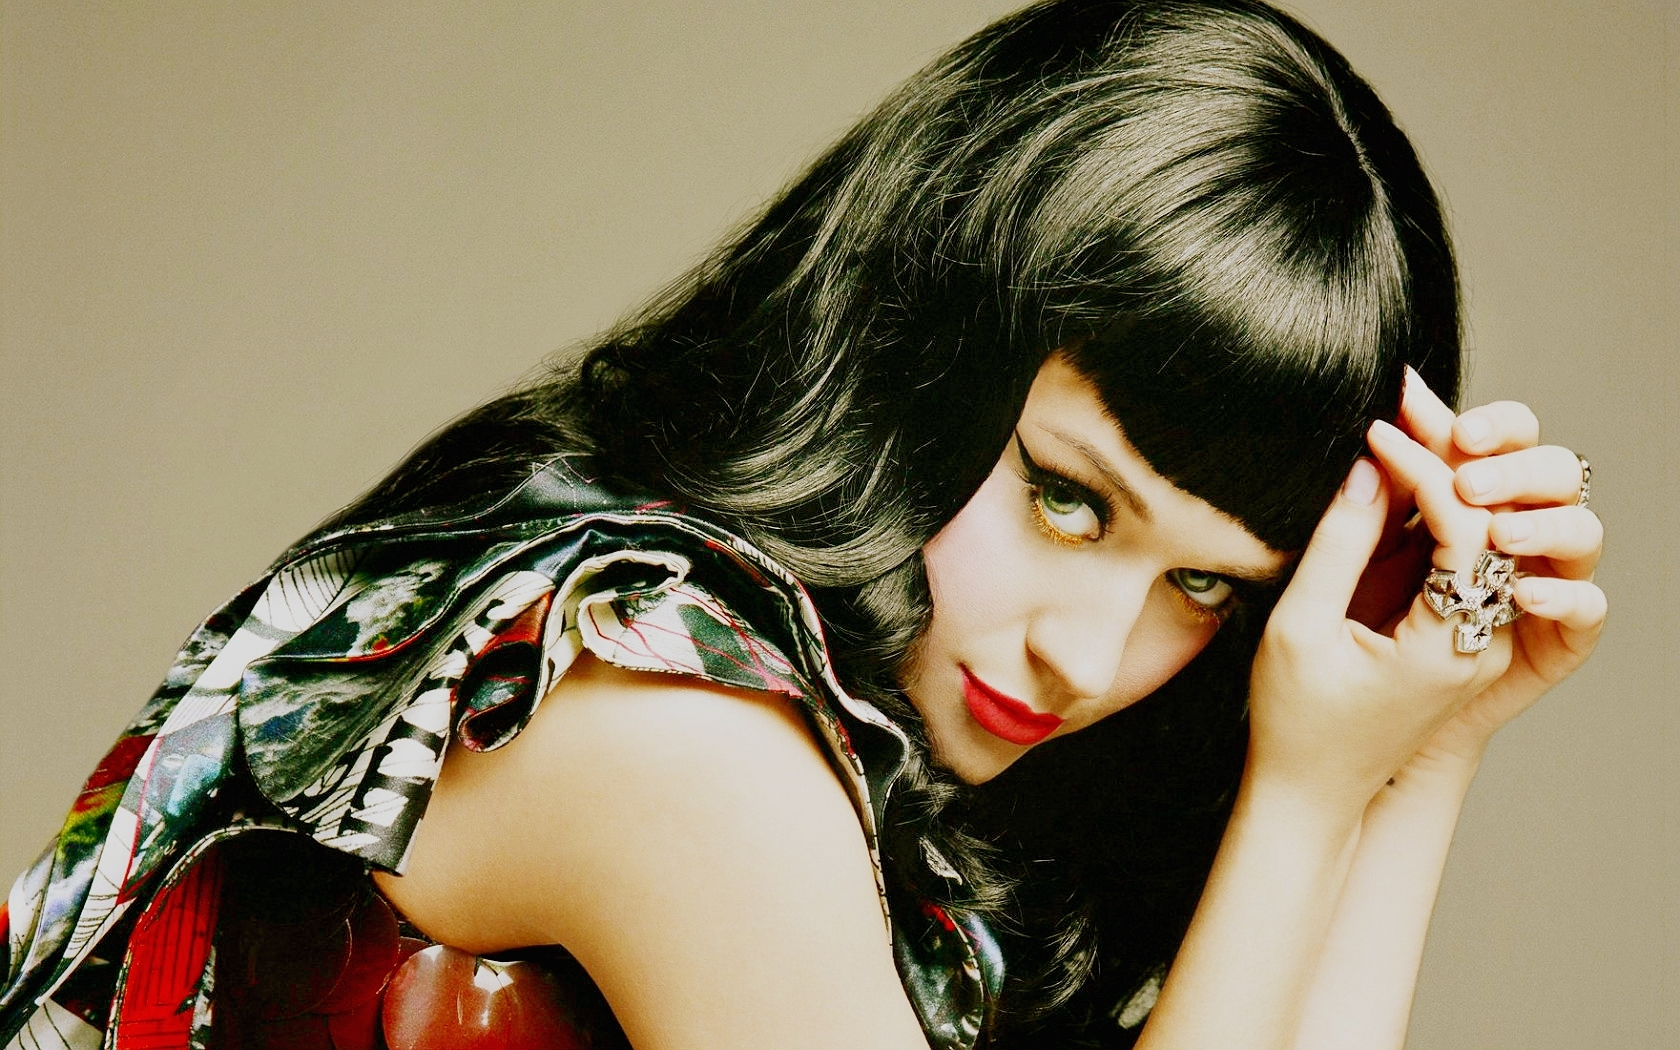 http://images4.fanpop.com/image/photos/18800000/Katy-Perry-Wallpaper-katy-perry-18854413-1680-1050.jpg